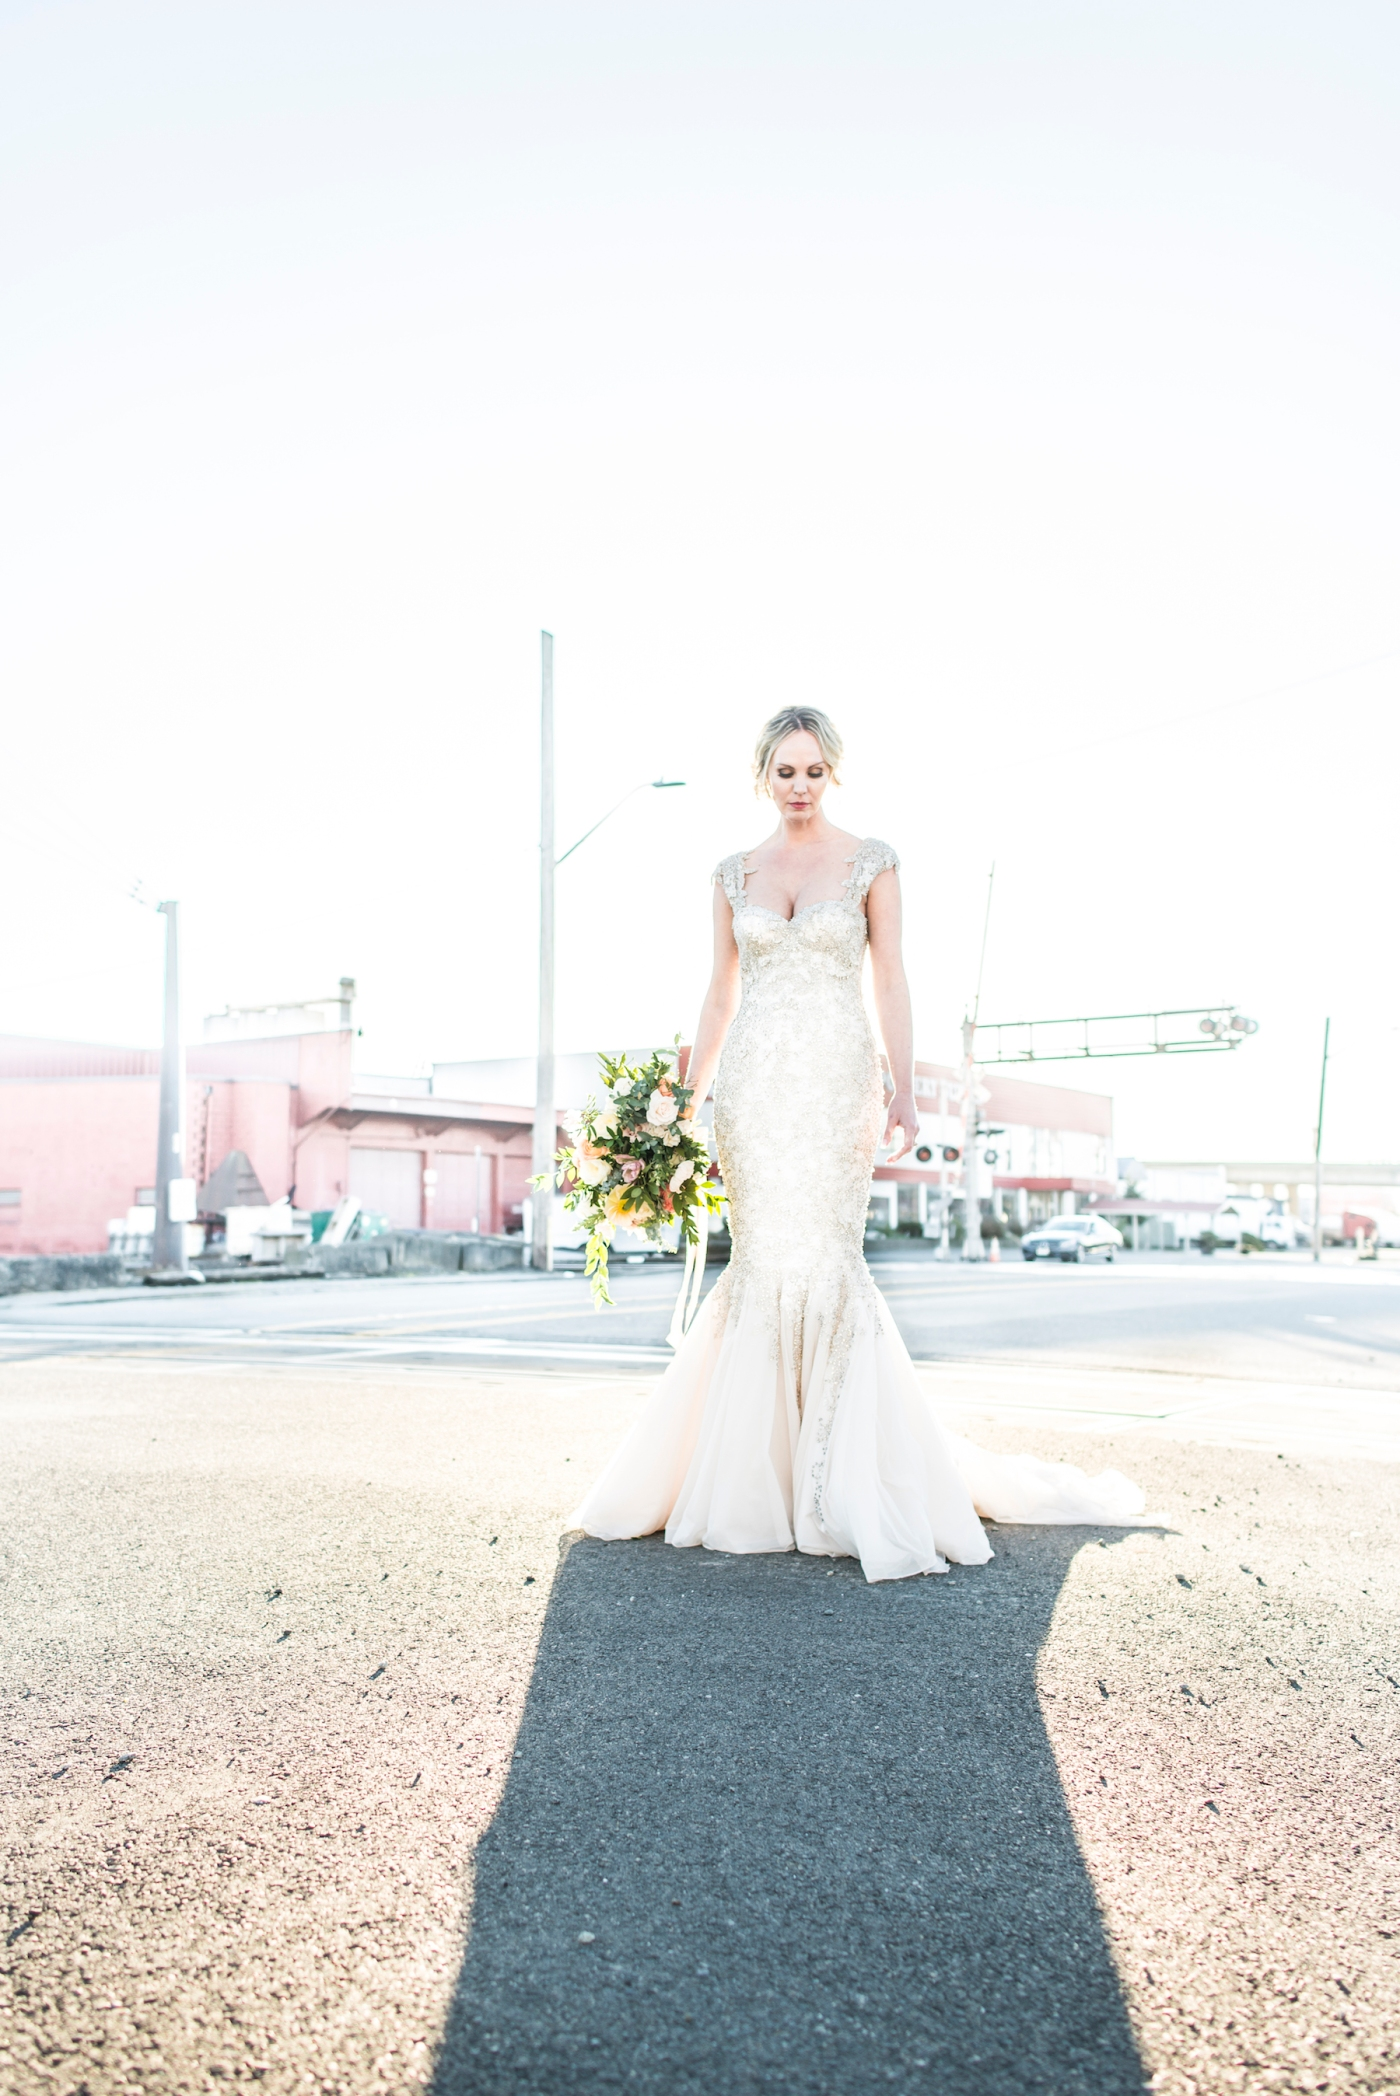 photography_by_jane_speleers_2017_wedding_show_i_do_sodo_within_designed_by_melody_davisdsc_0727